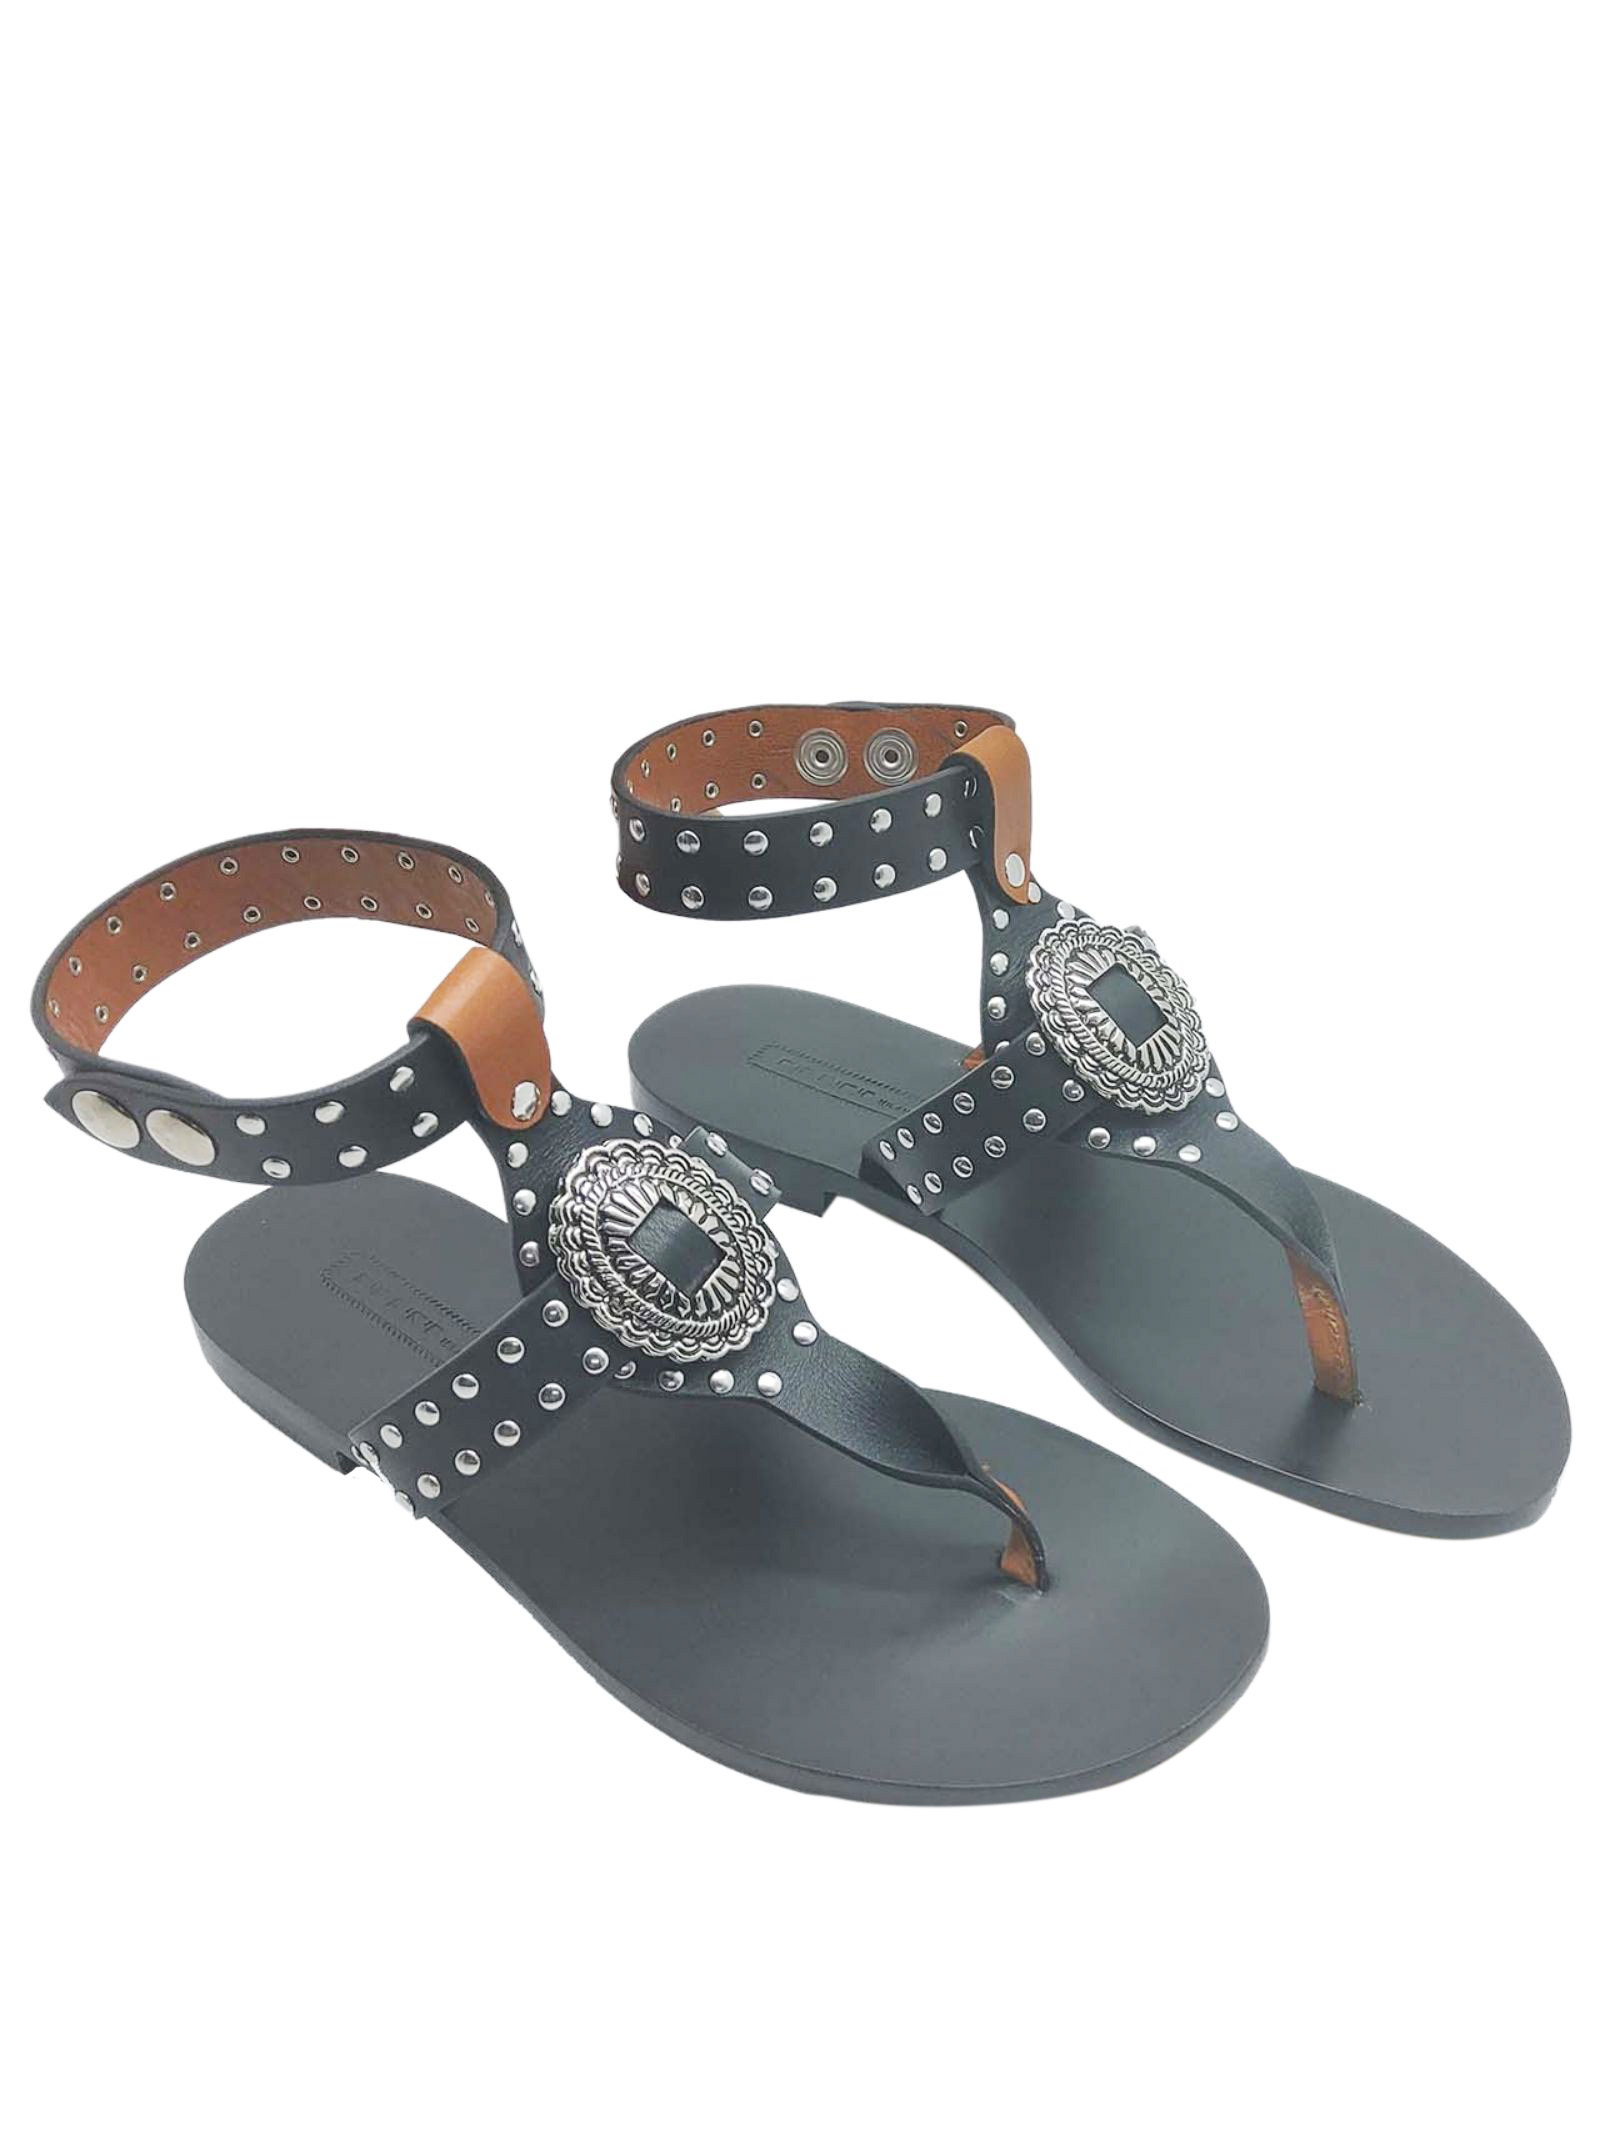 Women's Shoes Flat Sandals in Black Leather with Studs and Strap with Leather Sole Nanni Milano | Flat sandals | NS508001